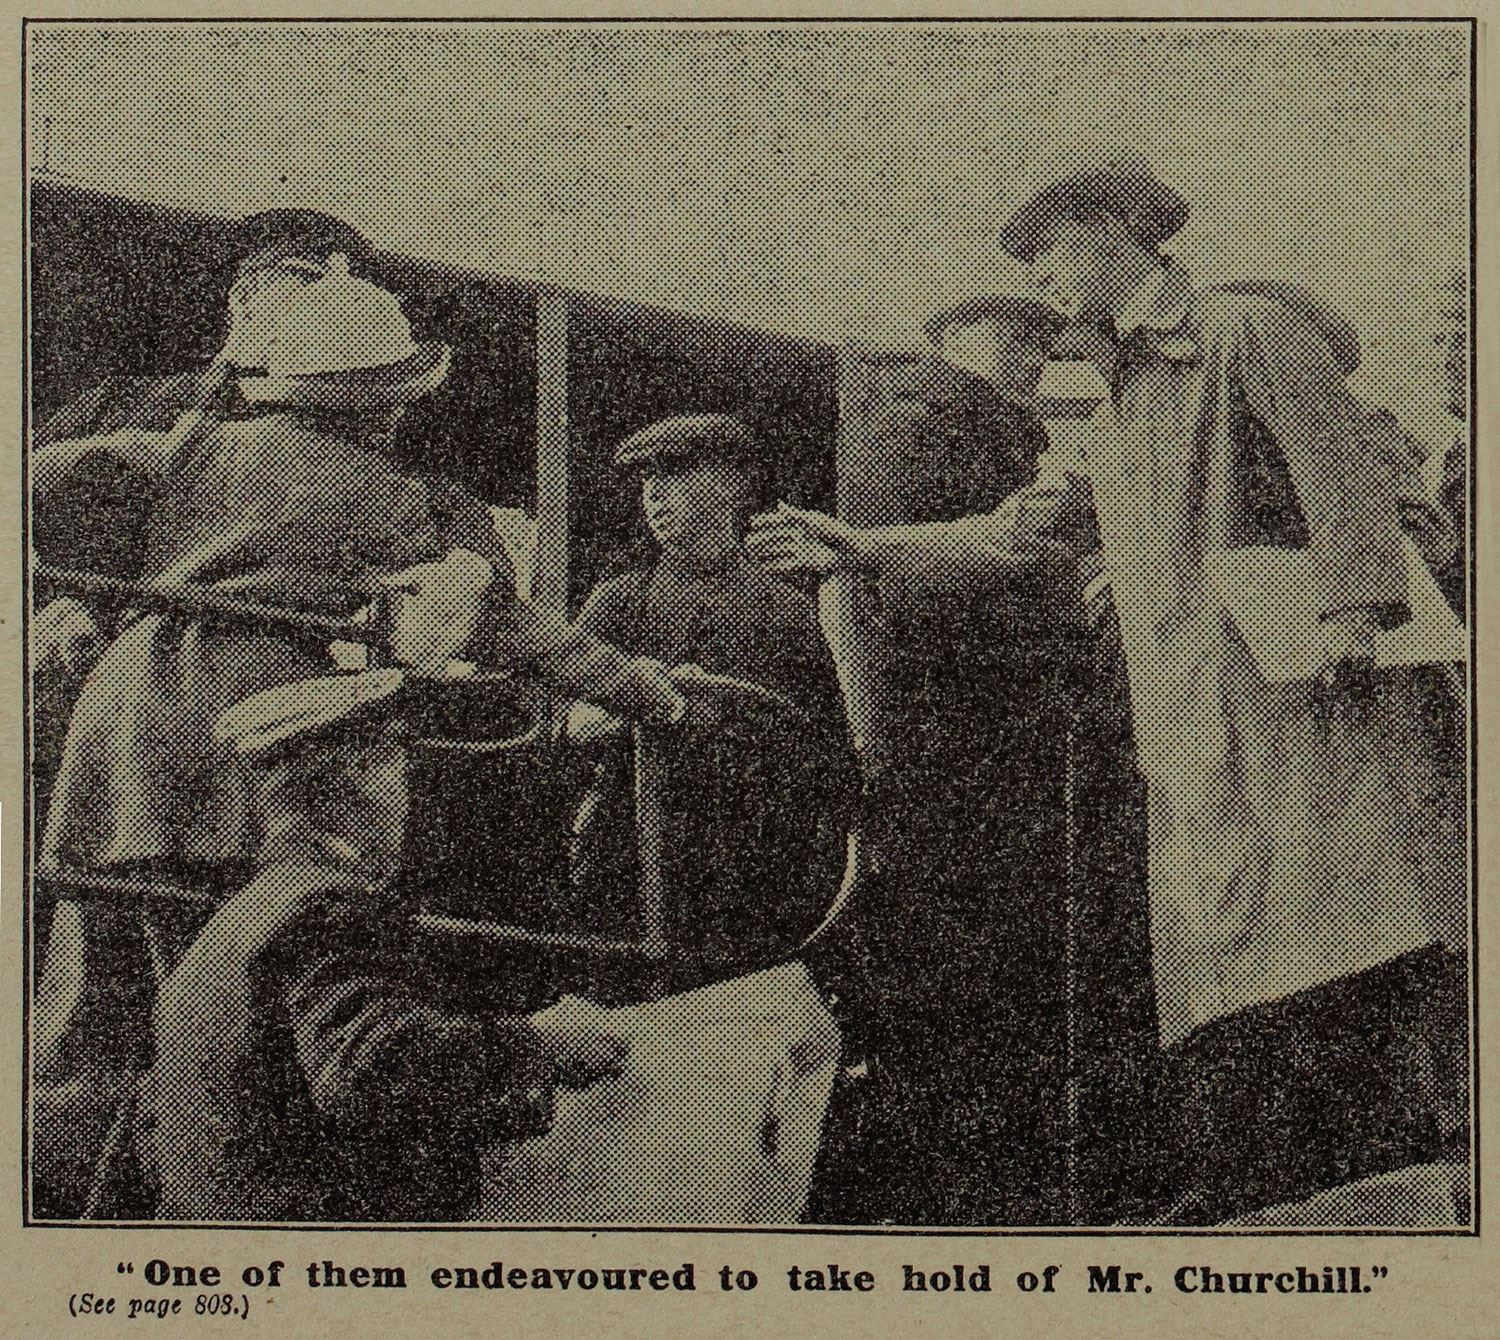 Printed photo of woman approaching Winston Churchill during an official visit, Aberdeen 1912